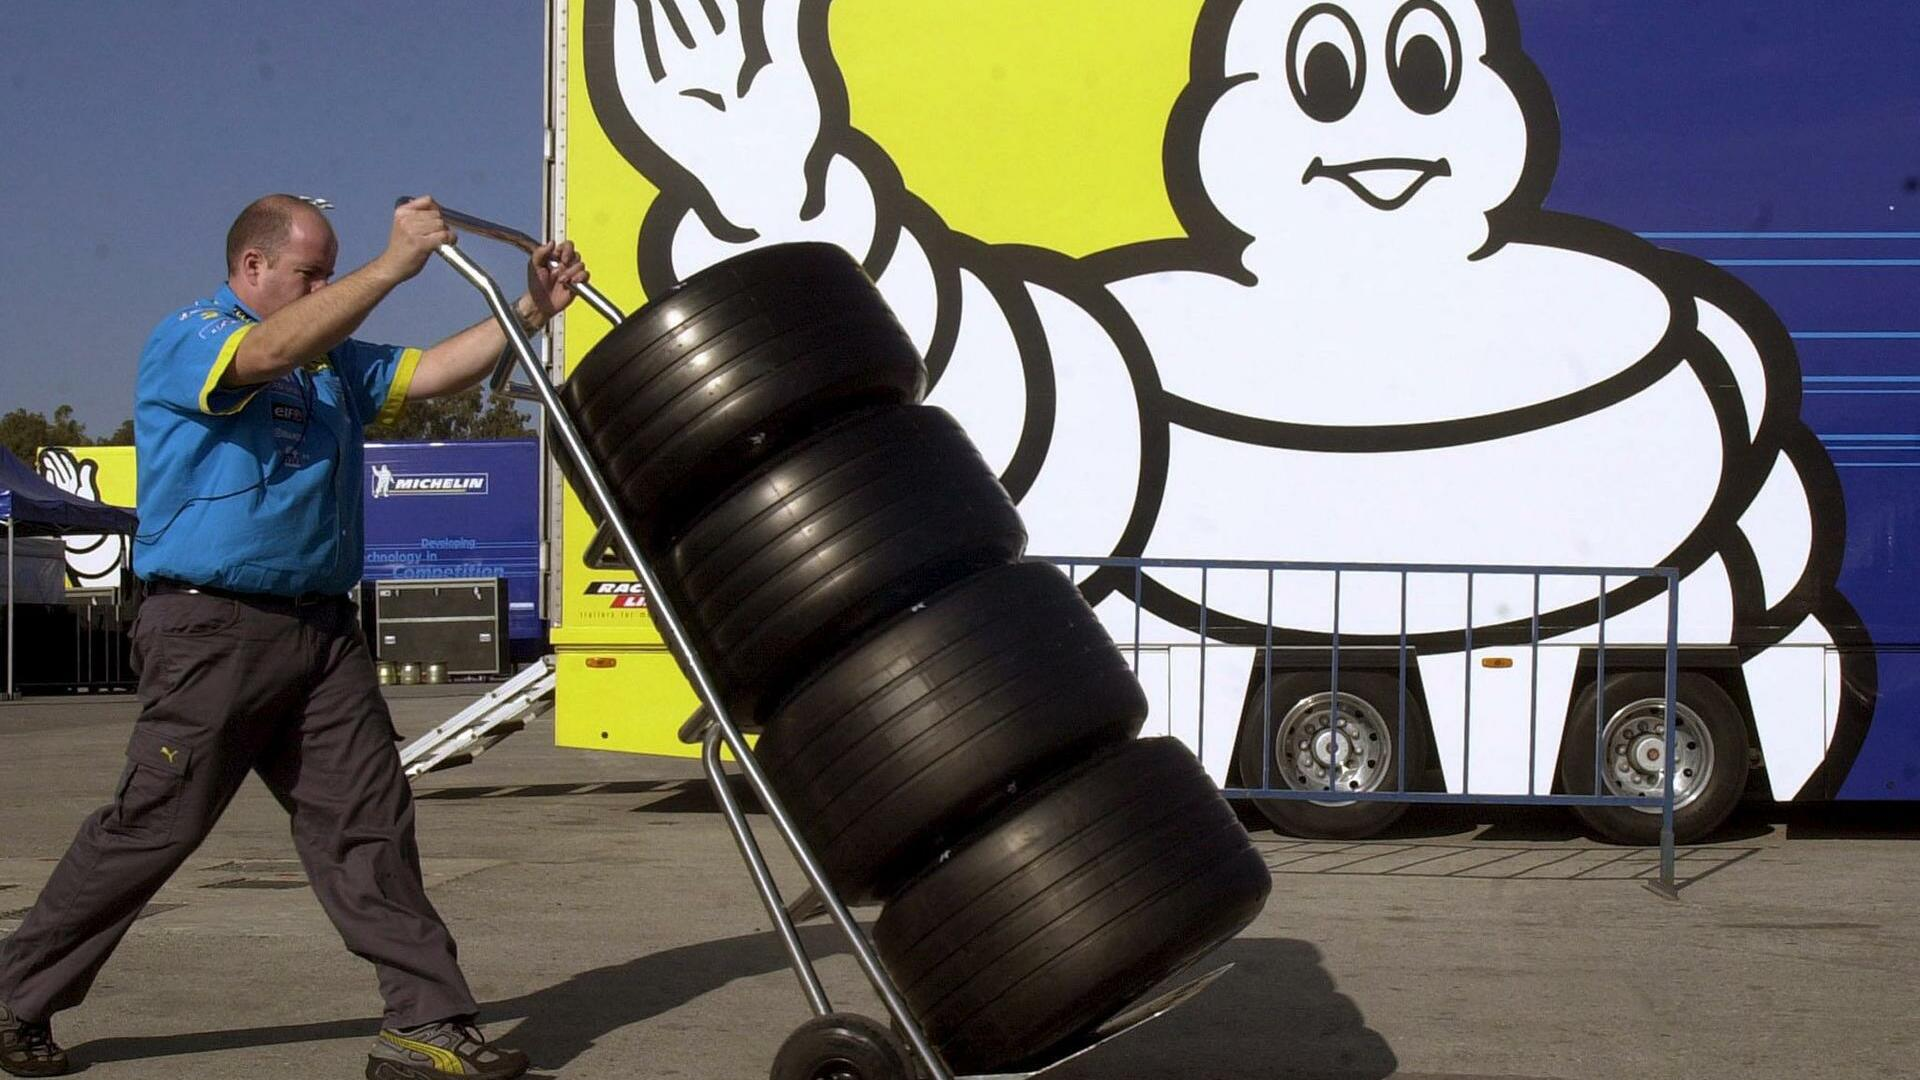 Michelin Quelle: dpa/dpaweb